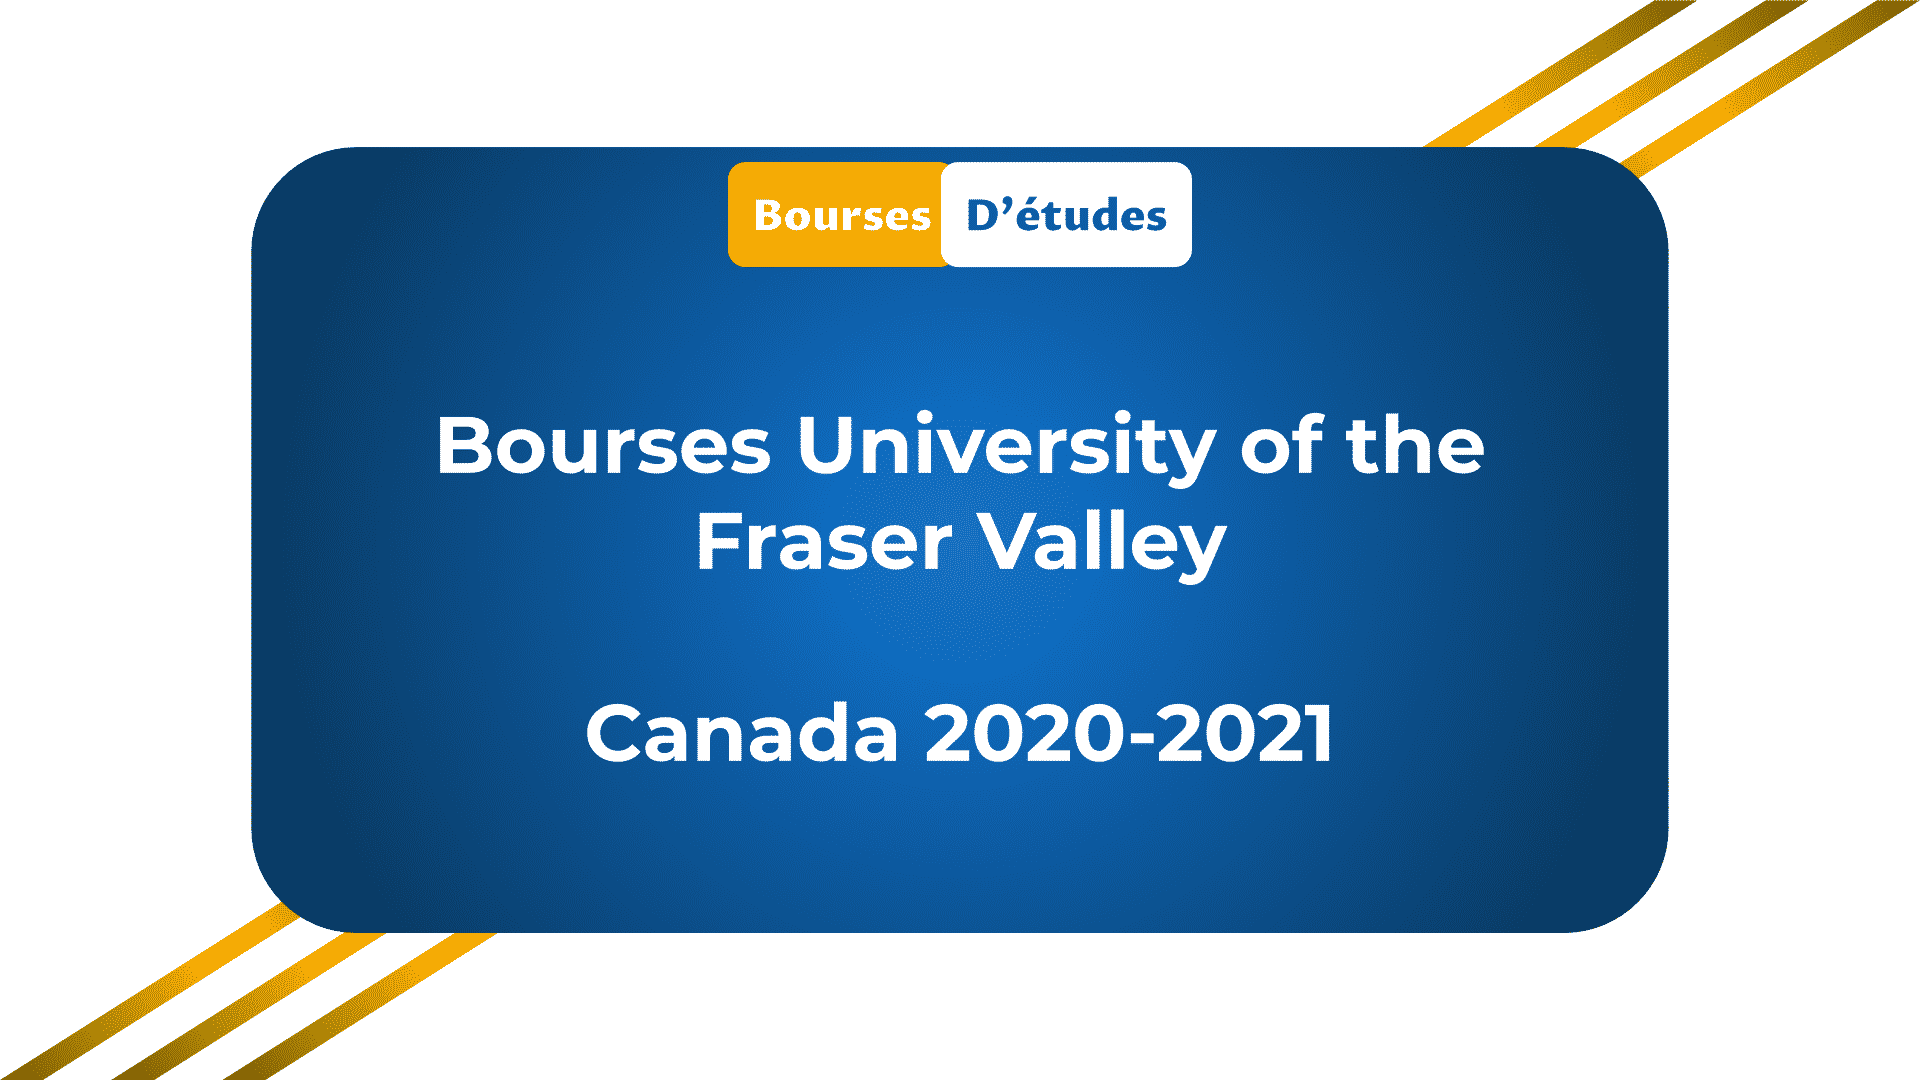 Bourses University of the Fraser Valley Canada 2020